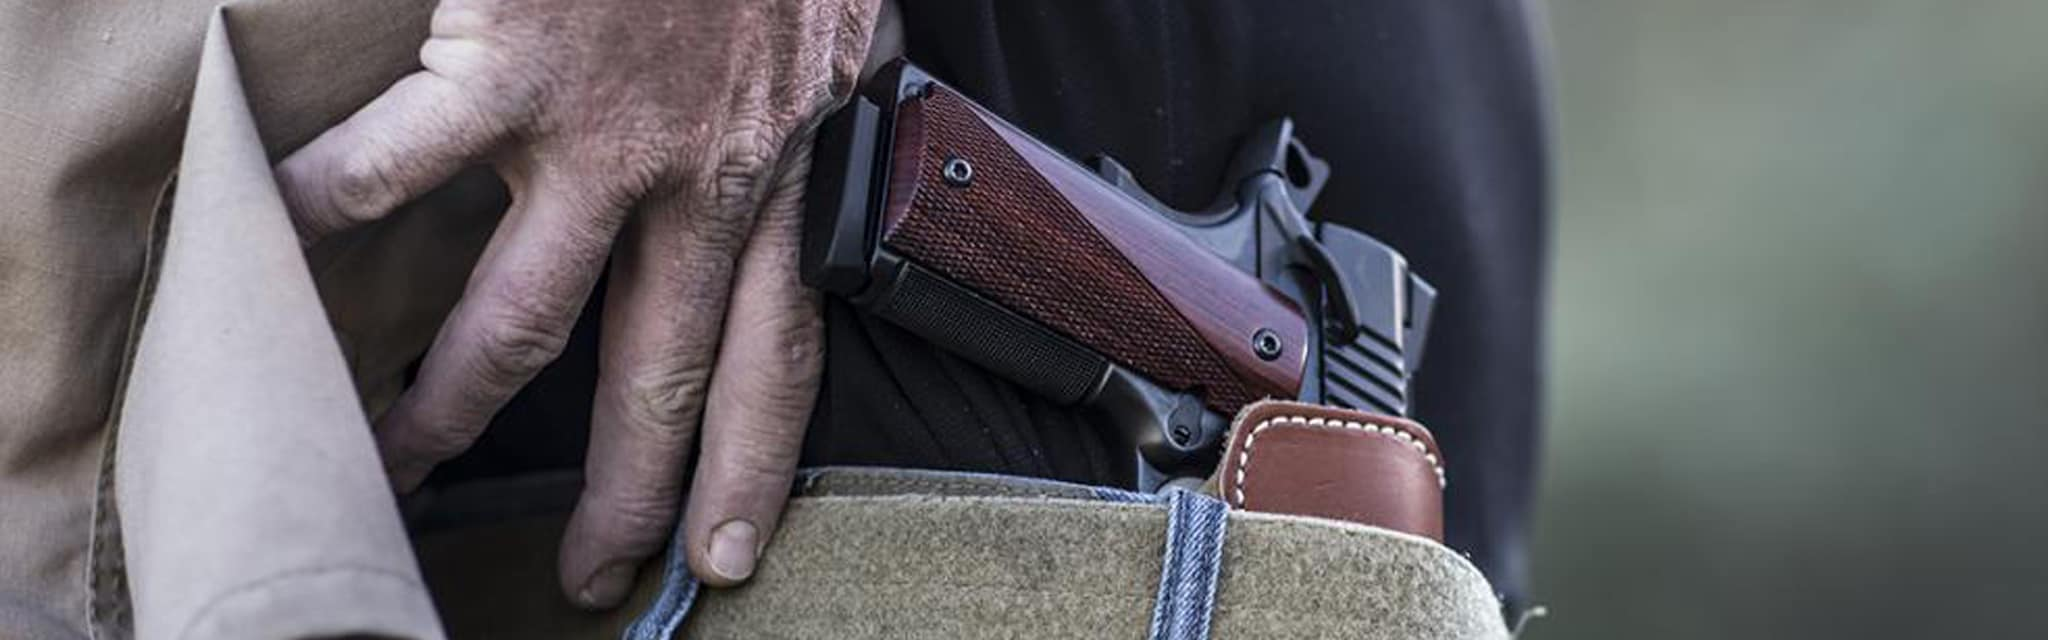 concealed carry brand banner